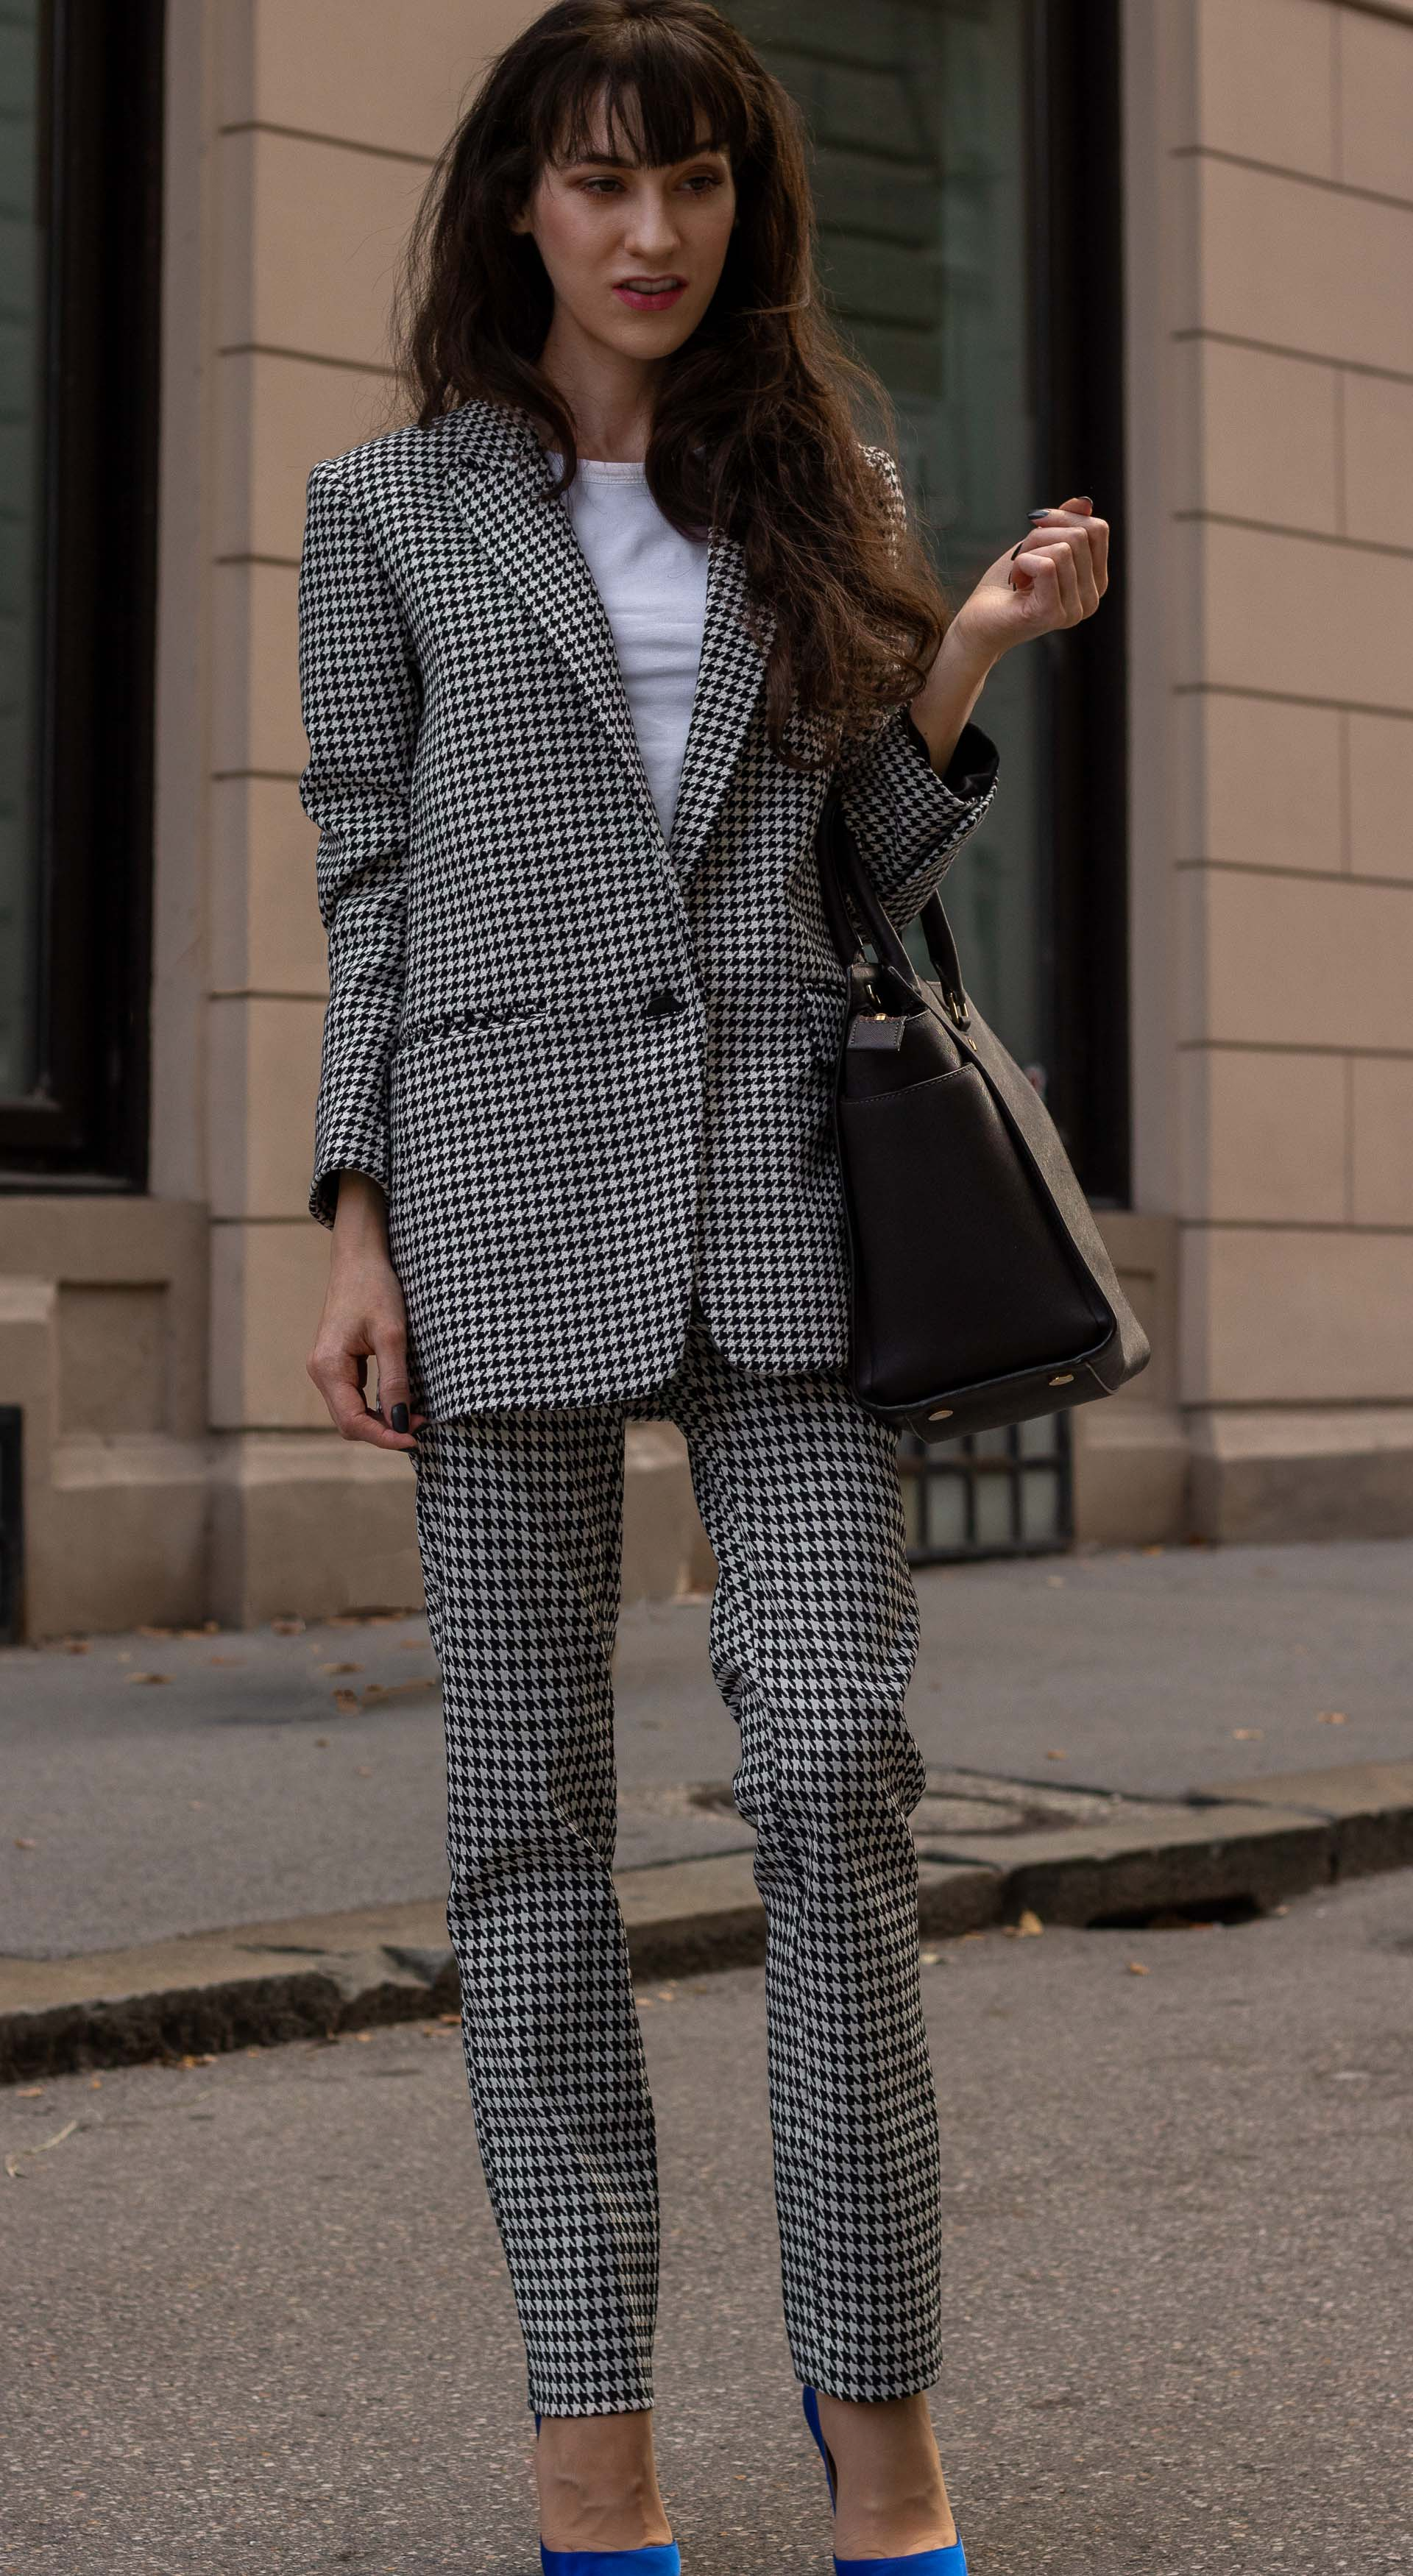 Fashion blogger Veronika Lipar of Brunette from Wall Street wearing Sandro Paris houndstooth suit Mihael Kors brown tote bag blue Gianvito Rossi pumps for work in fall